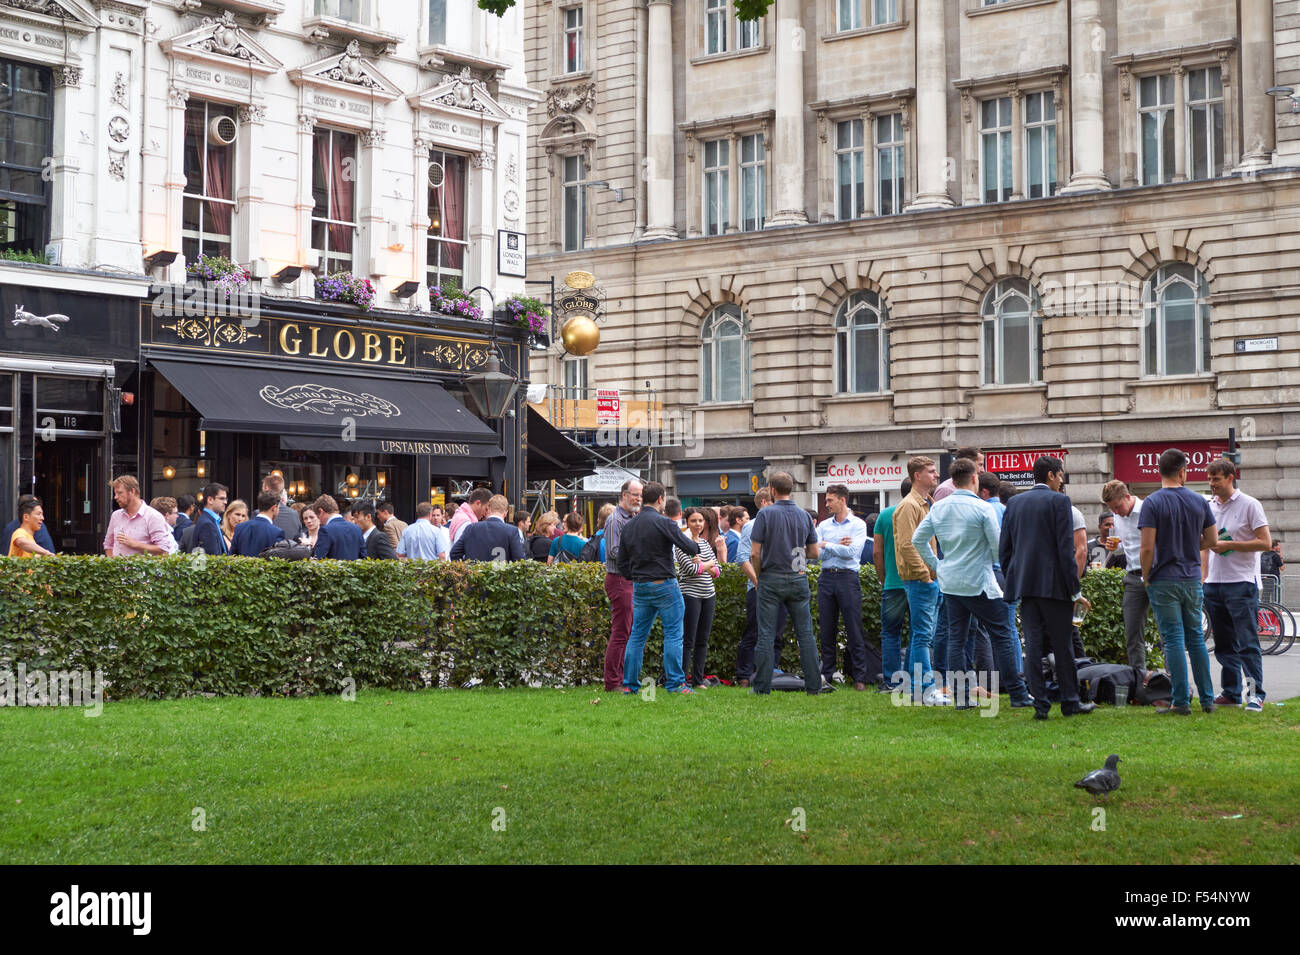 People drinking outside The Globe pub in London England United Kingdom UK Stock Photo